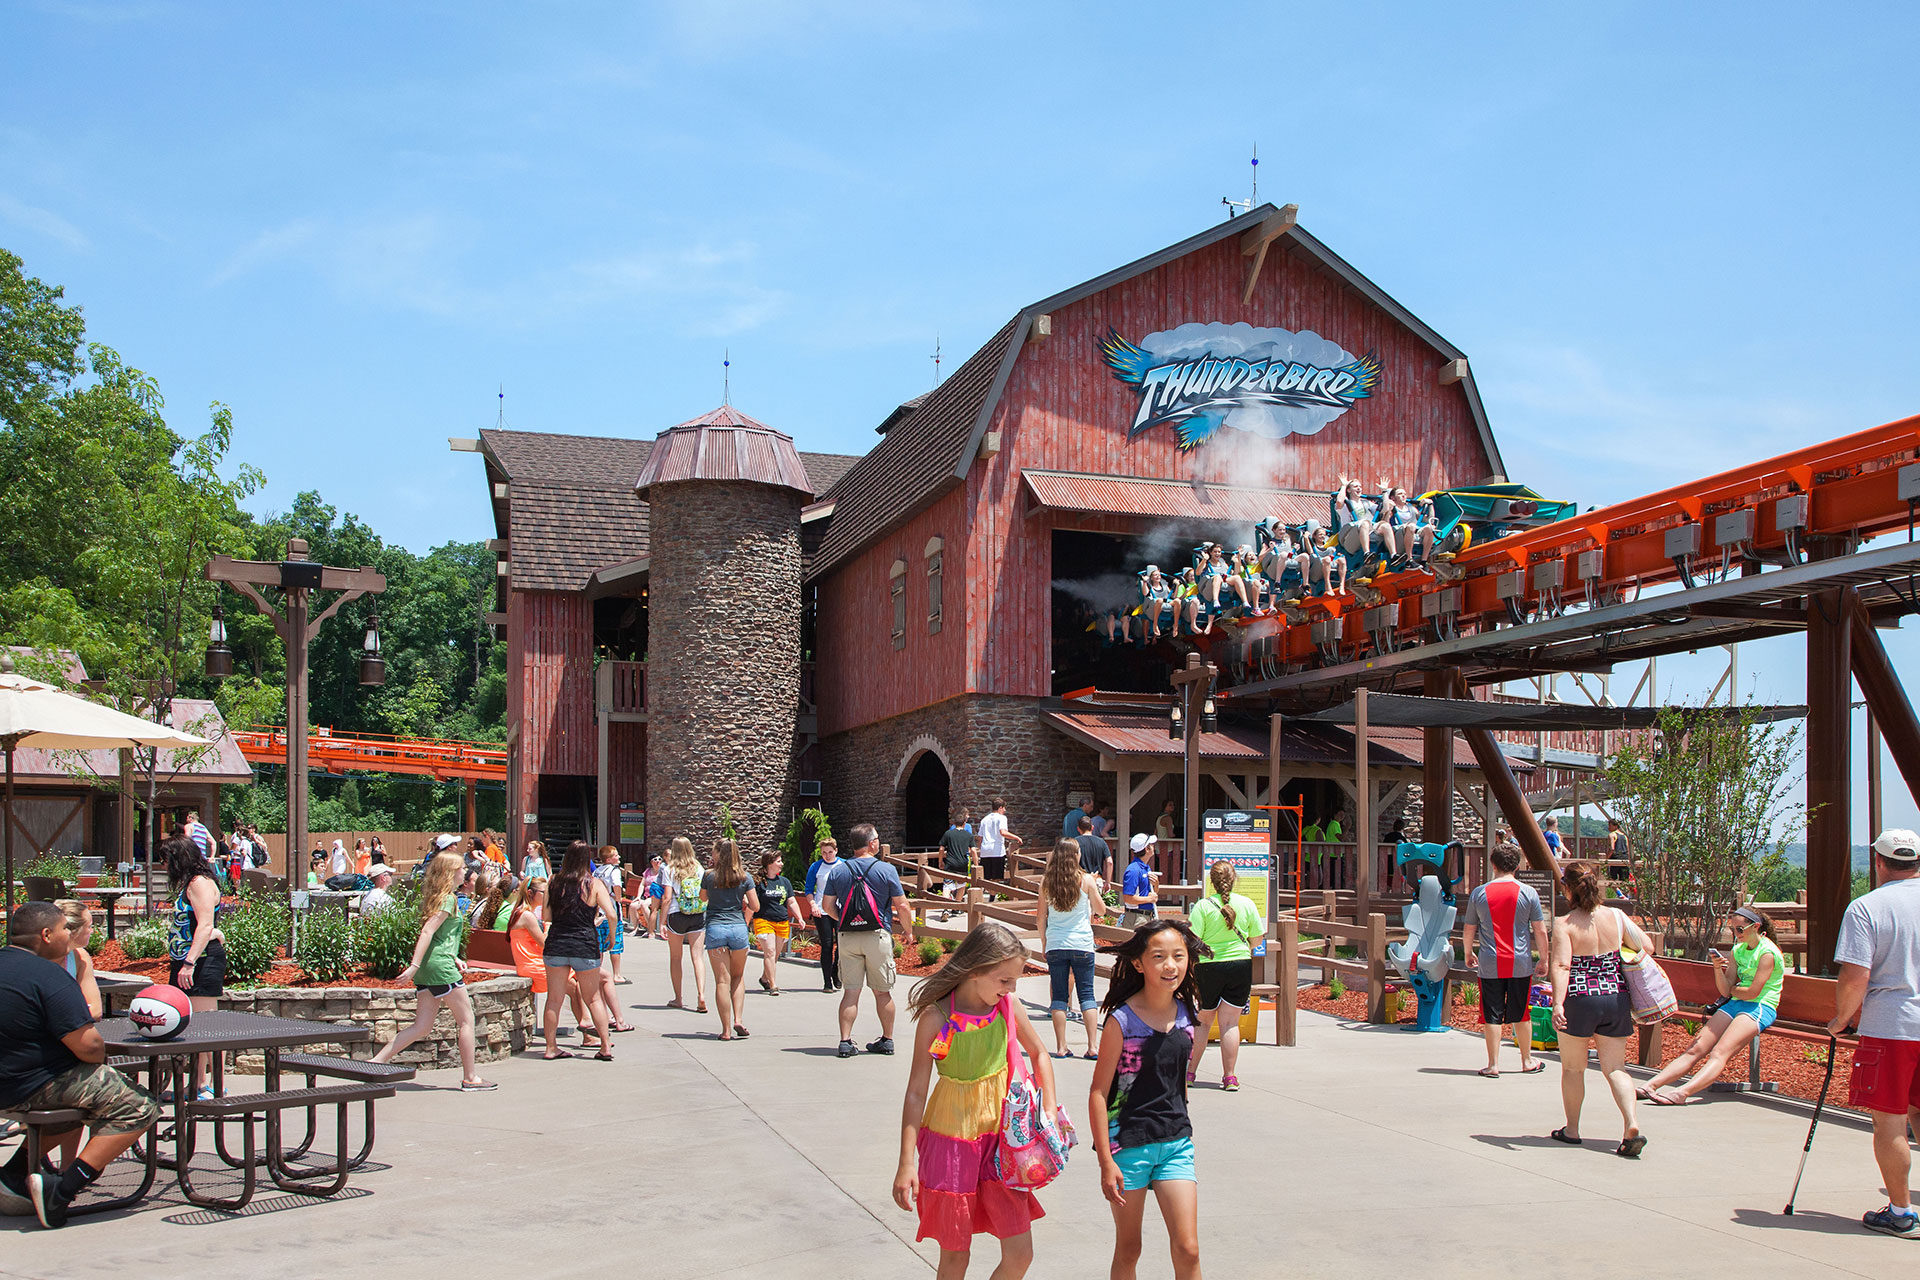 Roller Coaster and Crowds at Holiday World